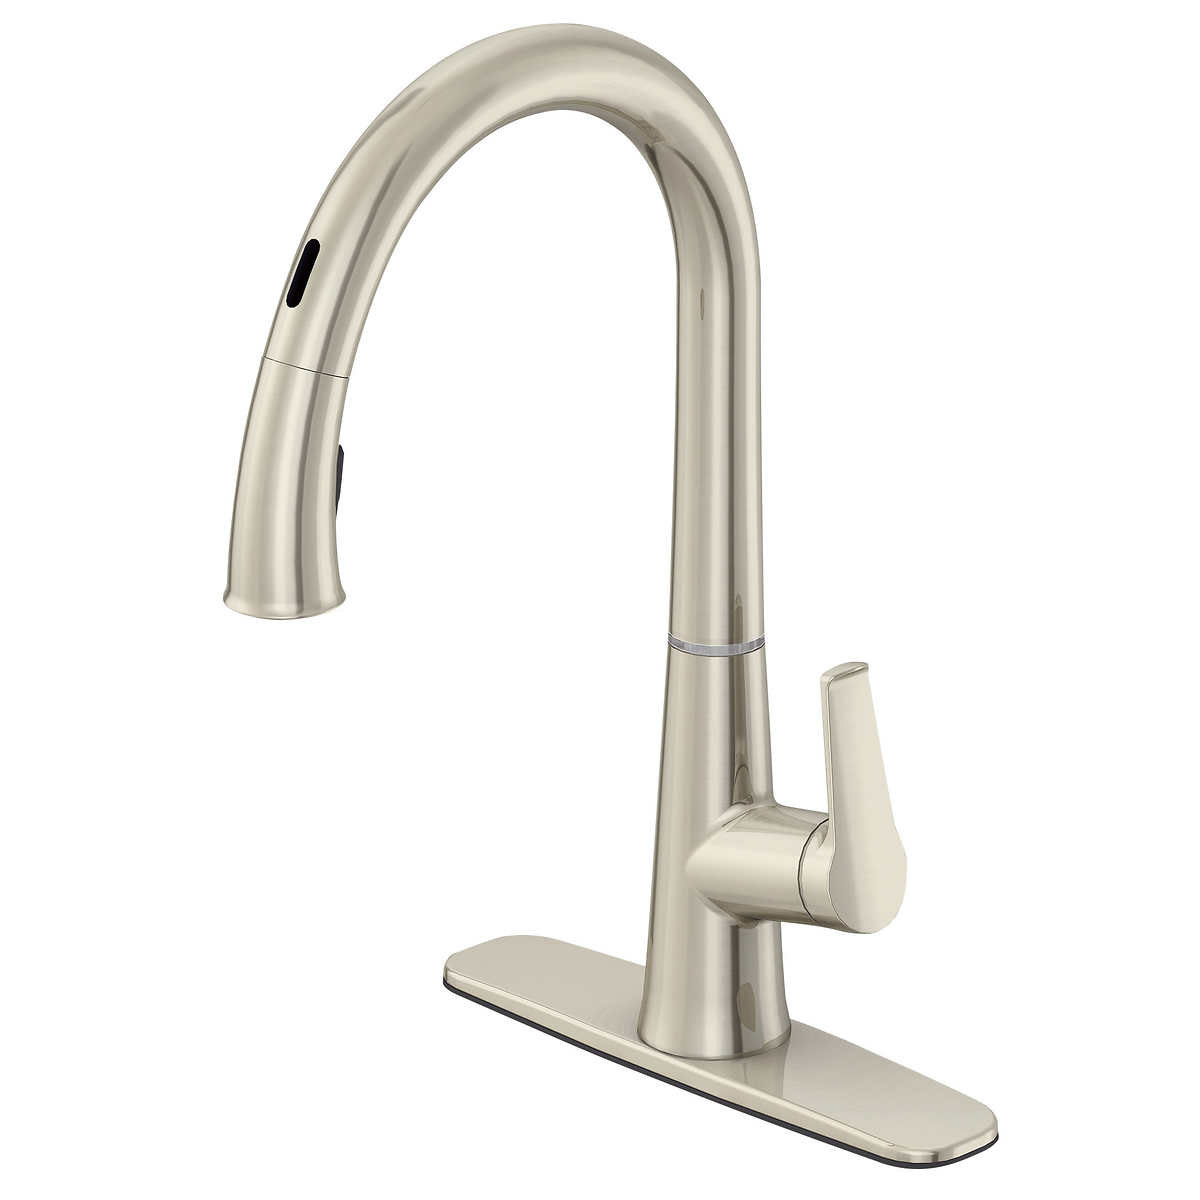 Hansgrohe Cento Kitchen Faucet in Steel Optik Chrome Finish